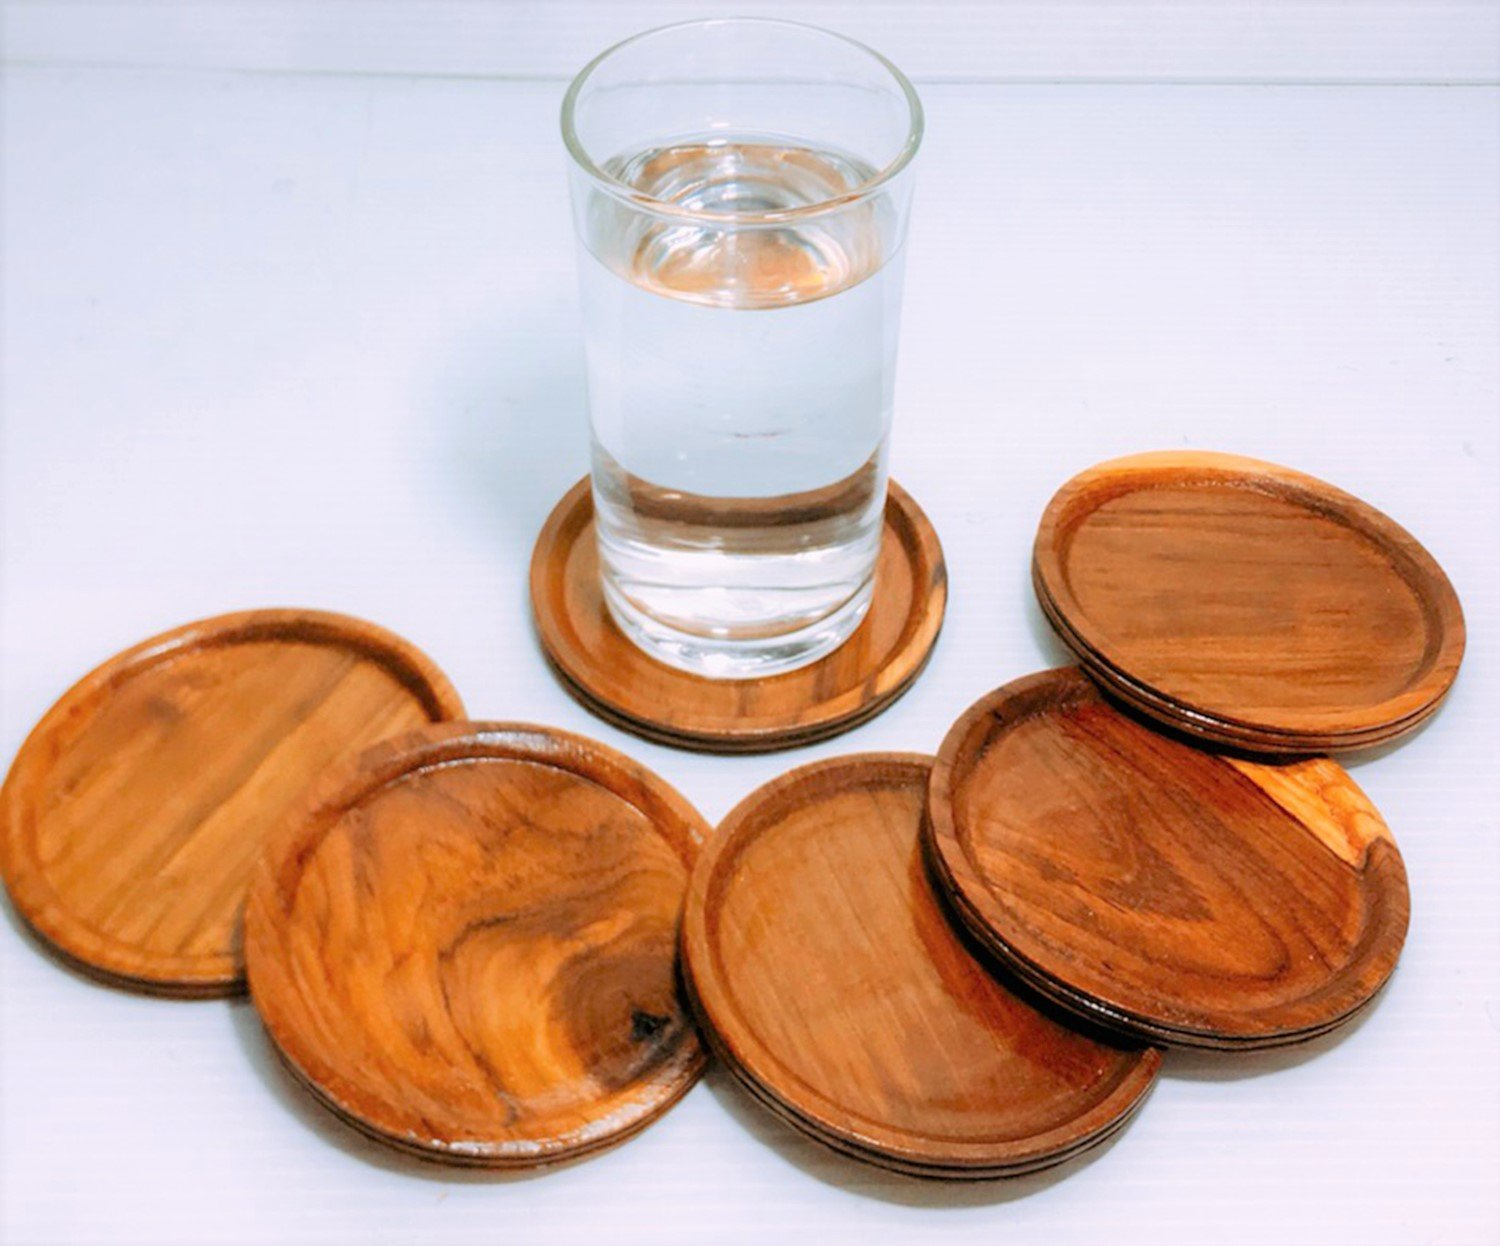 DDPremium Thai Handcraft Wooden Teak Wood Saucers Water Glass Coaster Set 6 Pcs, 3.4 inches in Diameter by DDPremium